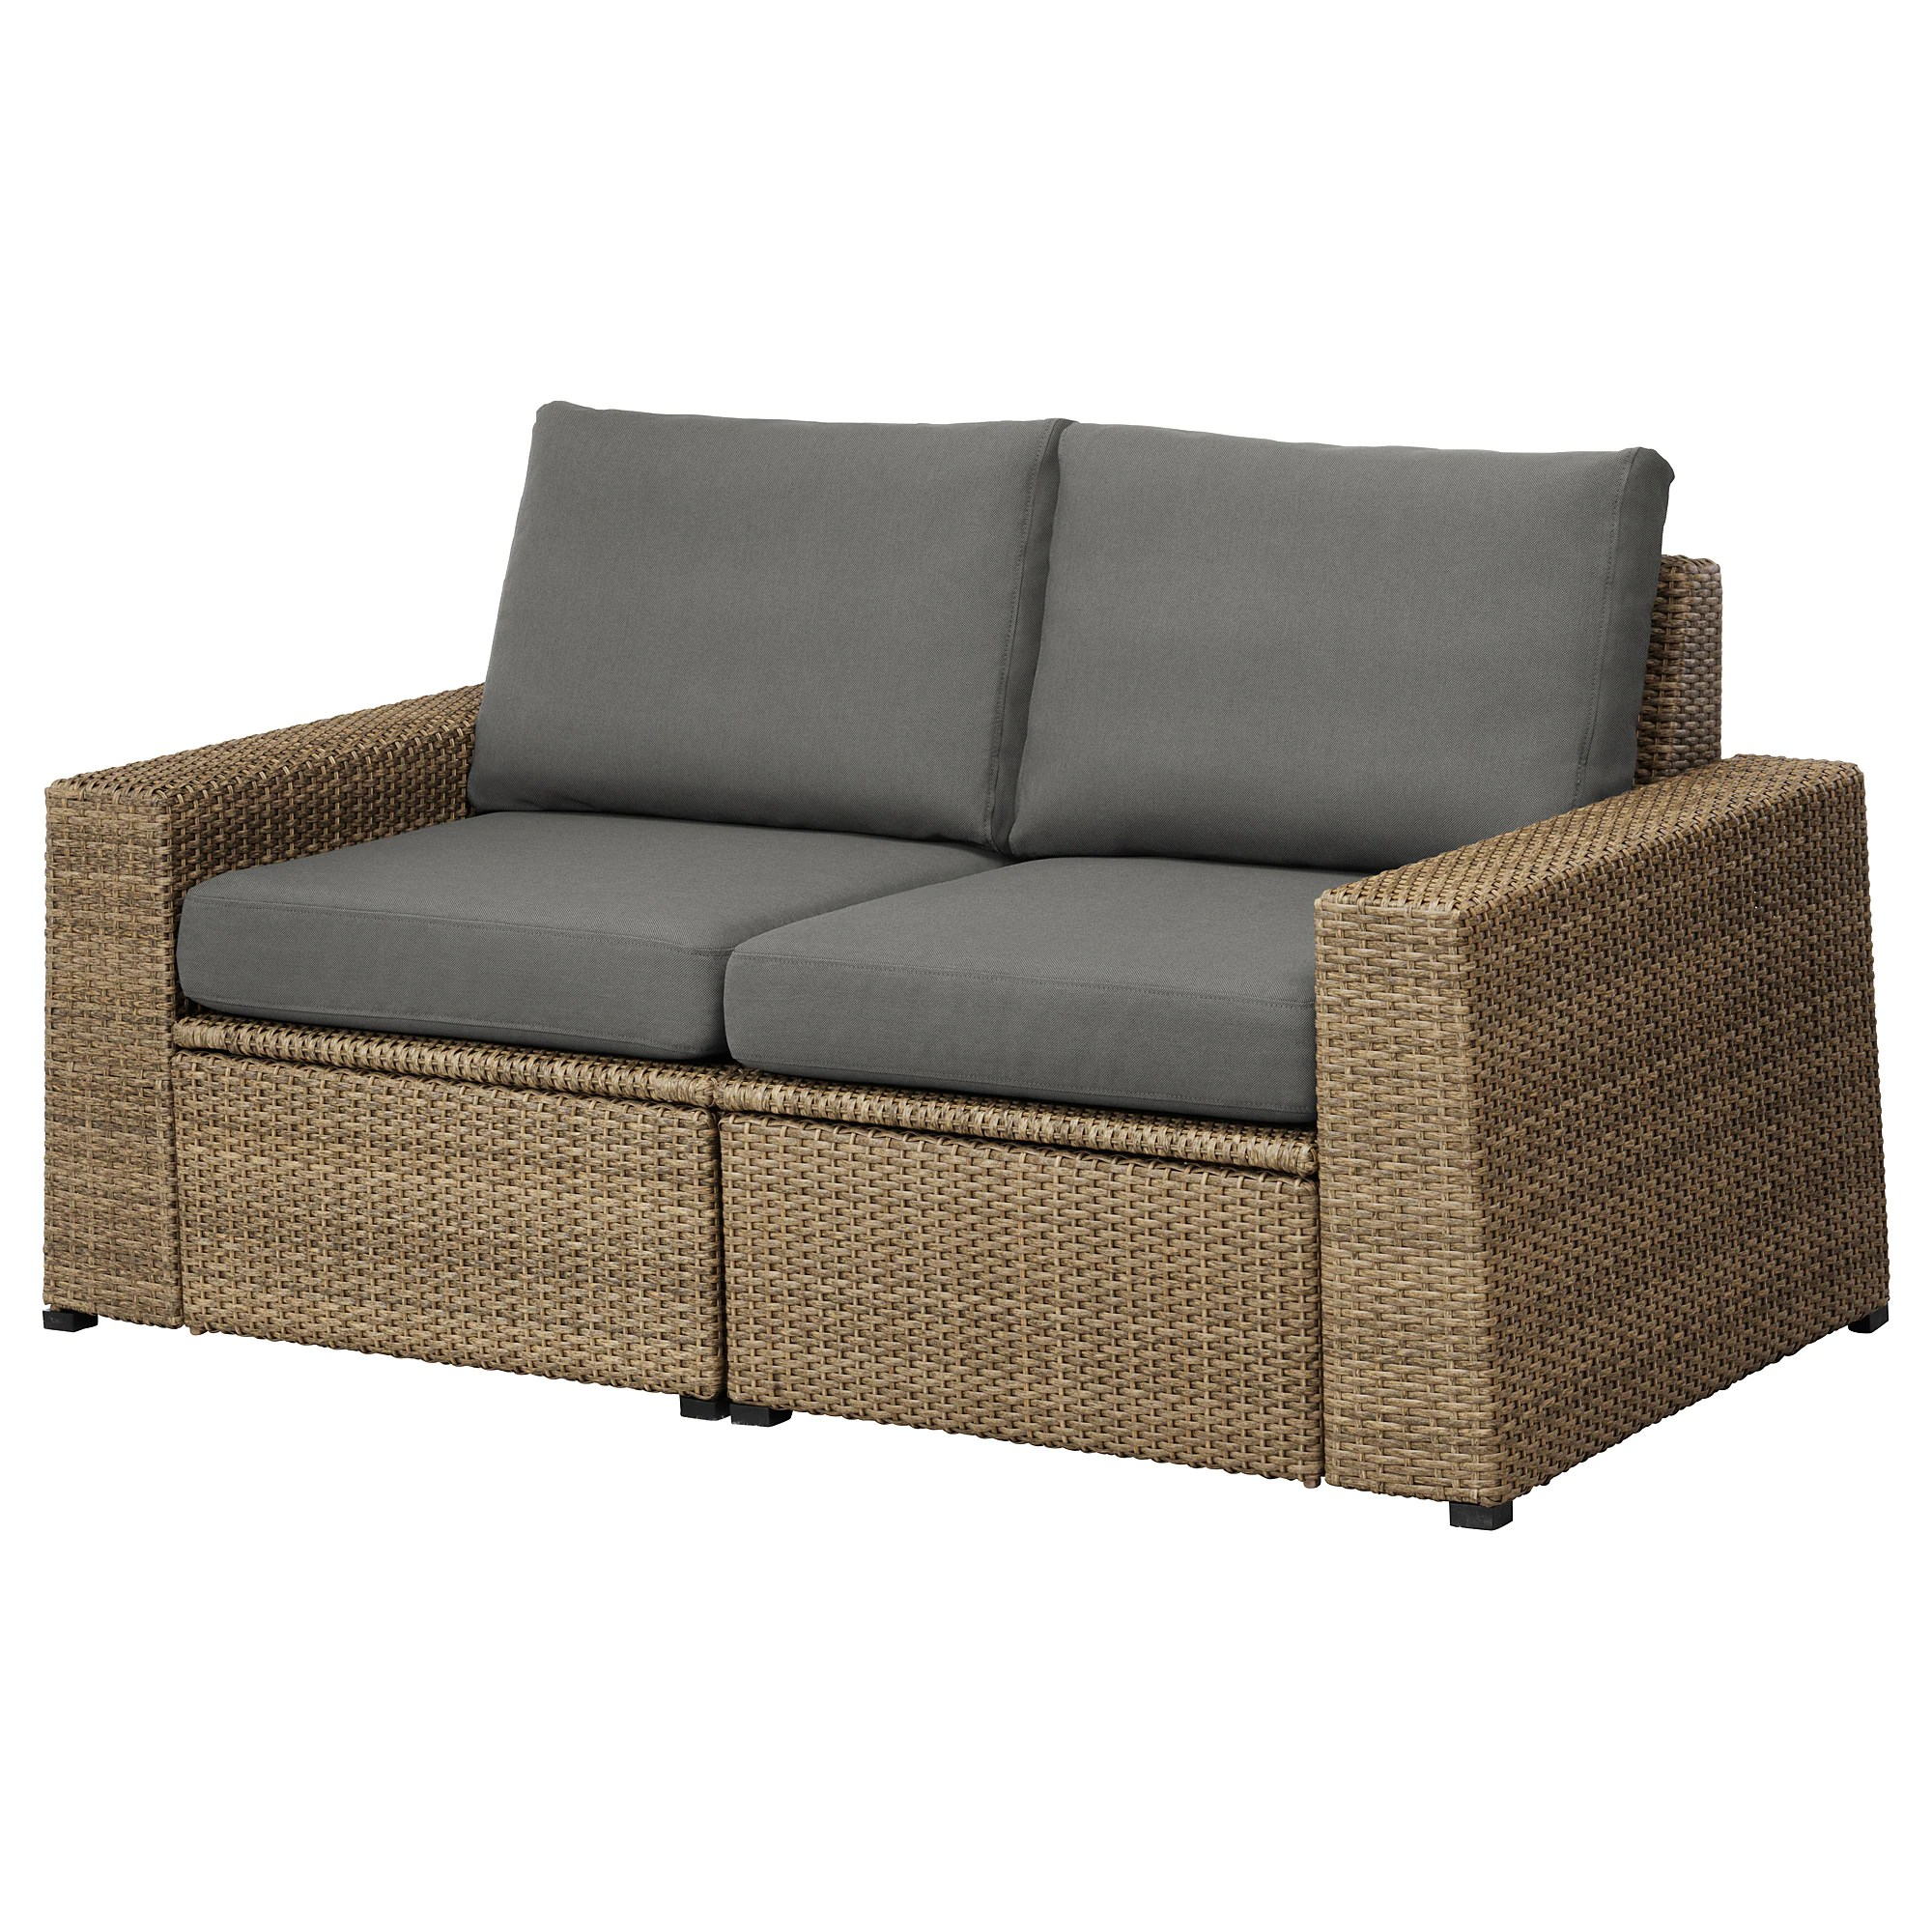 Outdoor Sofa SollerÖn 2 Seat Modular Sofa Outdoor Brown Hållö Beige